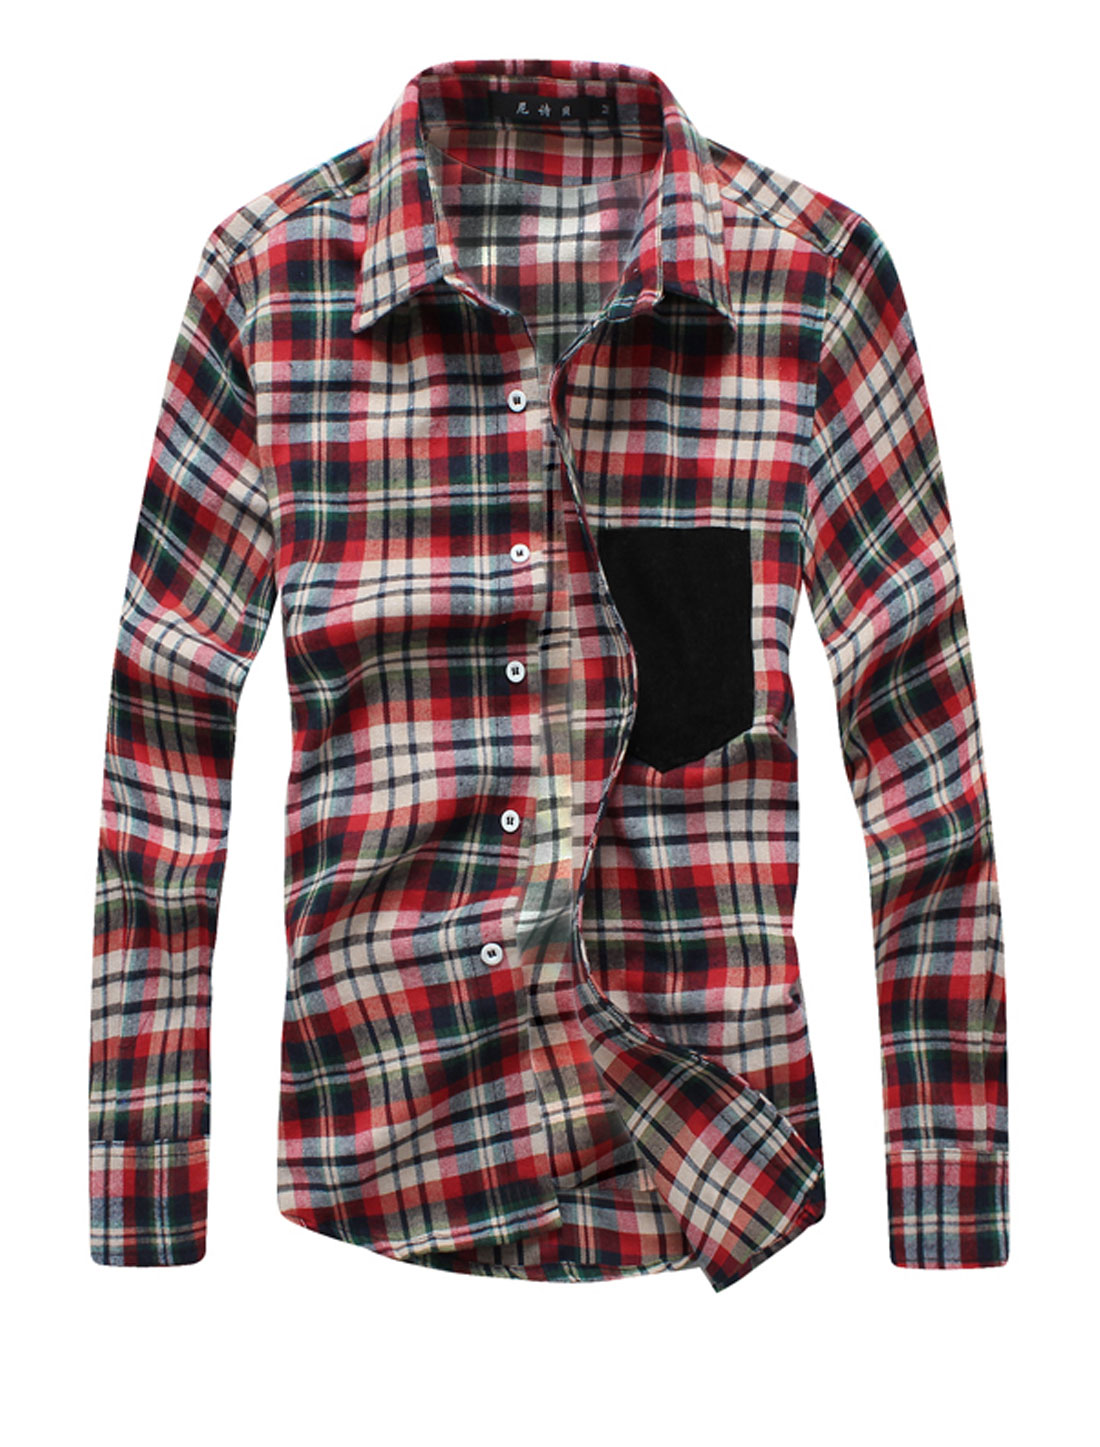 Man Chic Point Collar Plaids Button Down Casual Shirt Red Green M